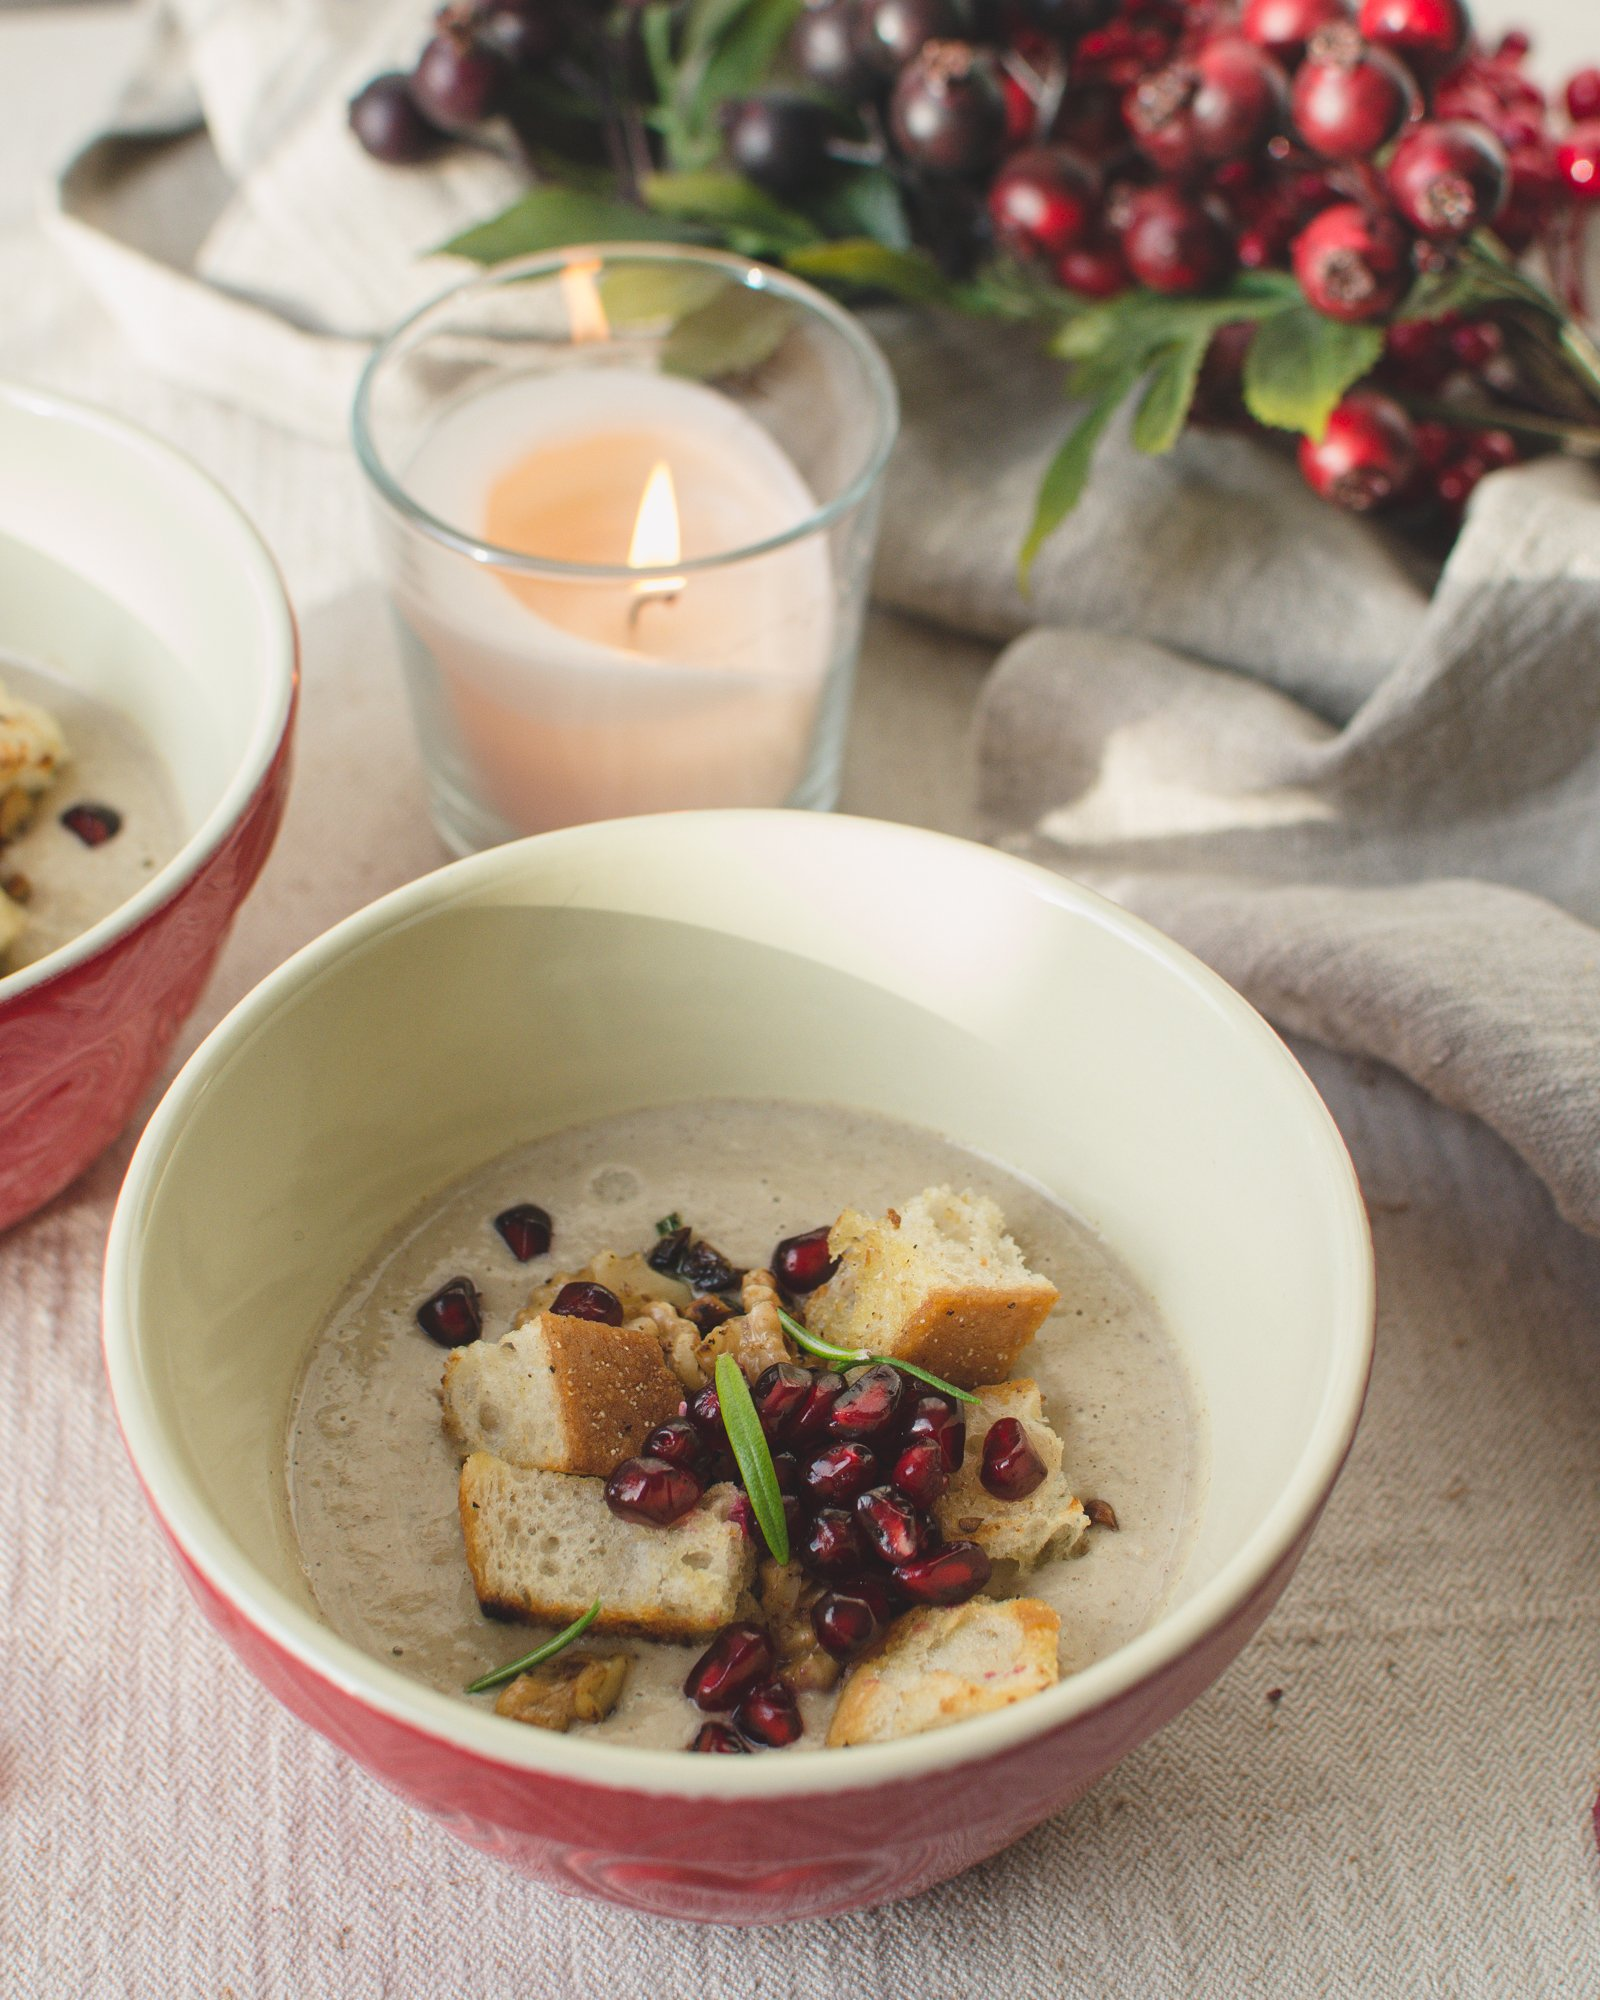 This creamy vegan chestnut soup is perfect for the winter time! Whether as a starter for your Christmas menu or as a main course on cold days - this nutty, creamy soup is quick to make and warms up nicely! The flavor of chestnuts, onions, garlic, cinnamon, parsnips and other delicious ingredients complement each other perfectly for this winter soup. #vegansoup #veganrecipe #cooking #christmas #wintersoup